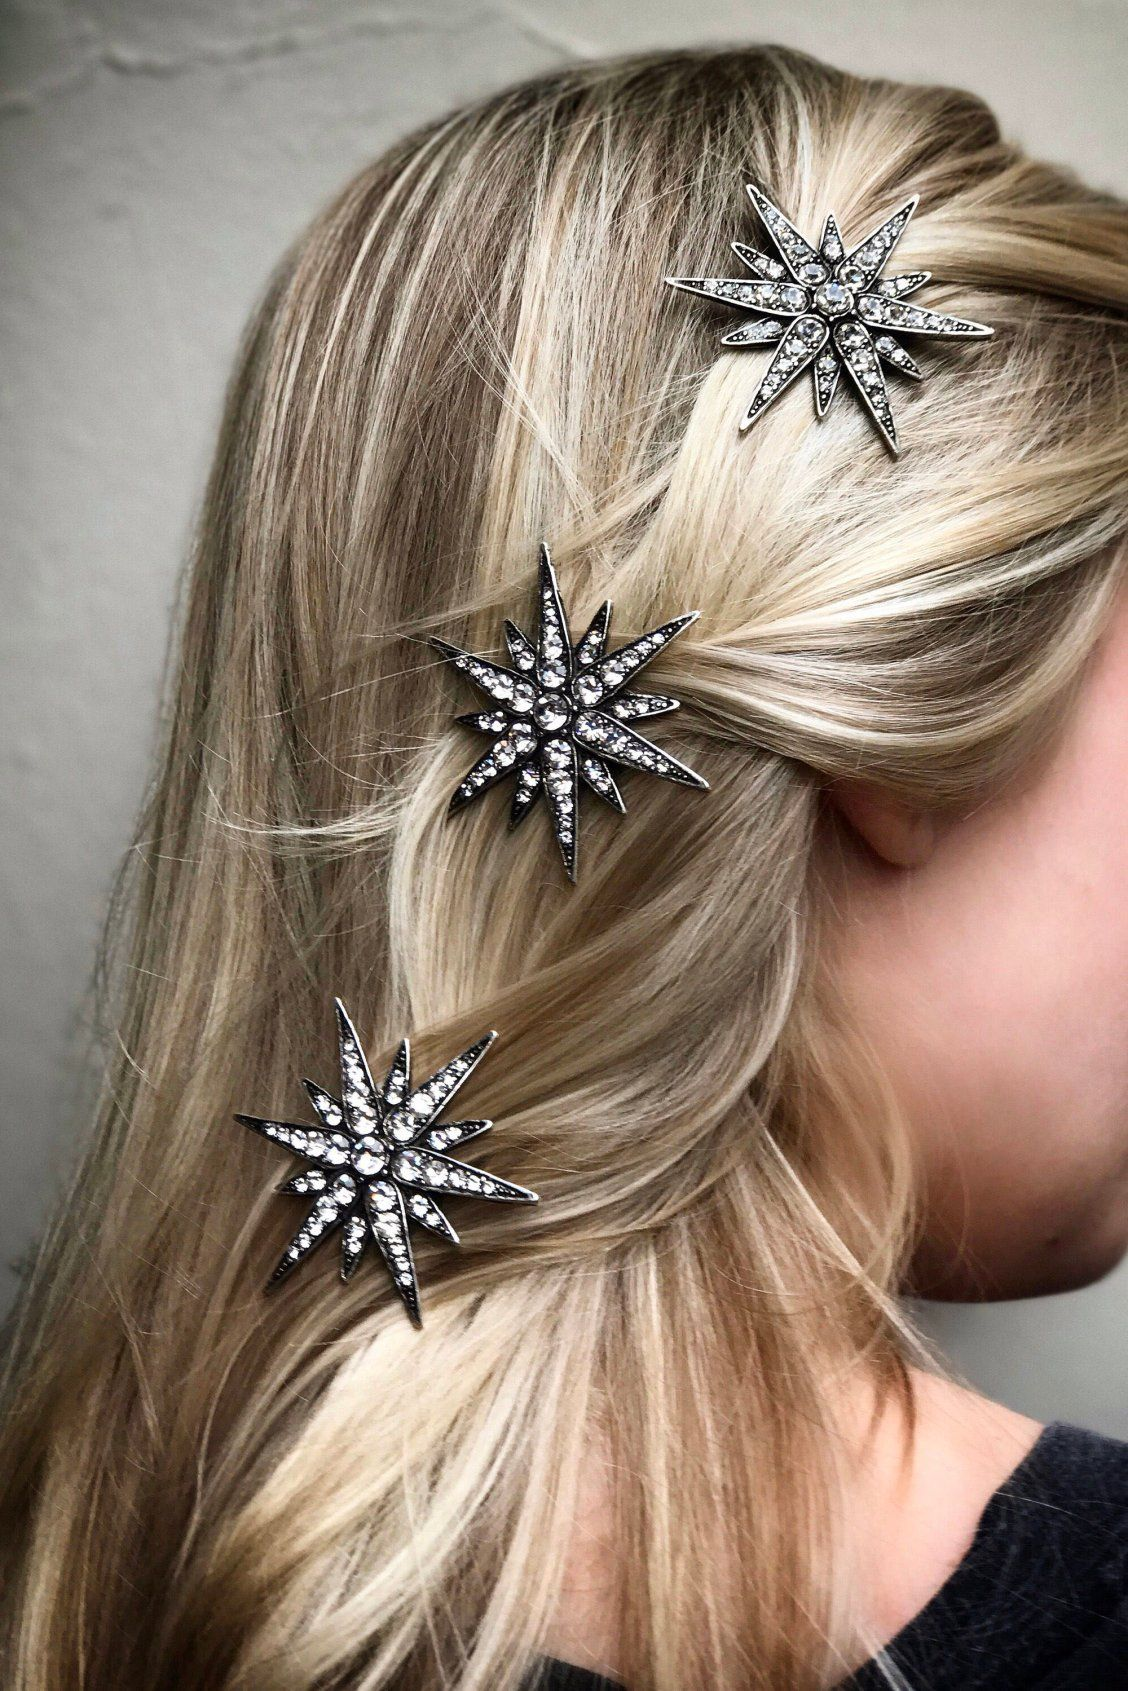 Starburst Hair Clip Barrette Star Crystal Rhinestone  Linx  in 2019 ... 6addb31ea717